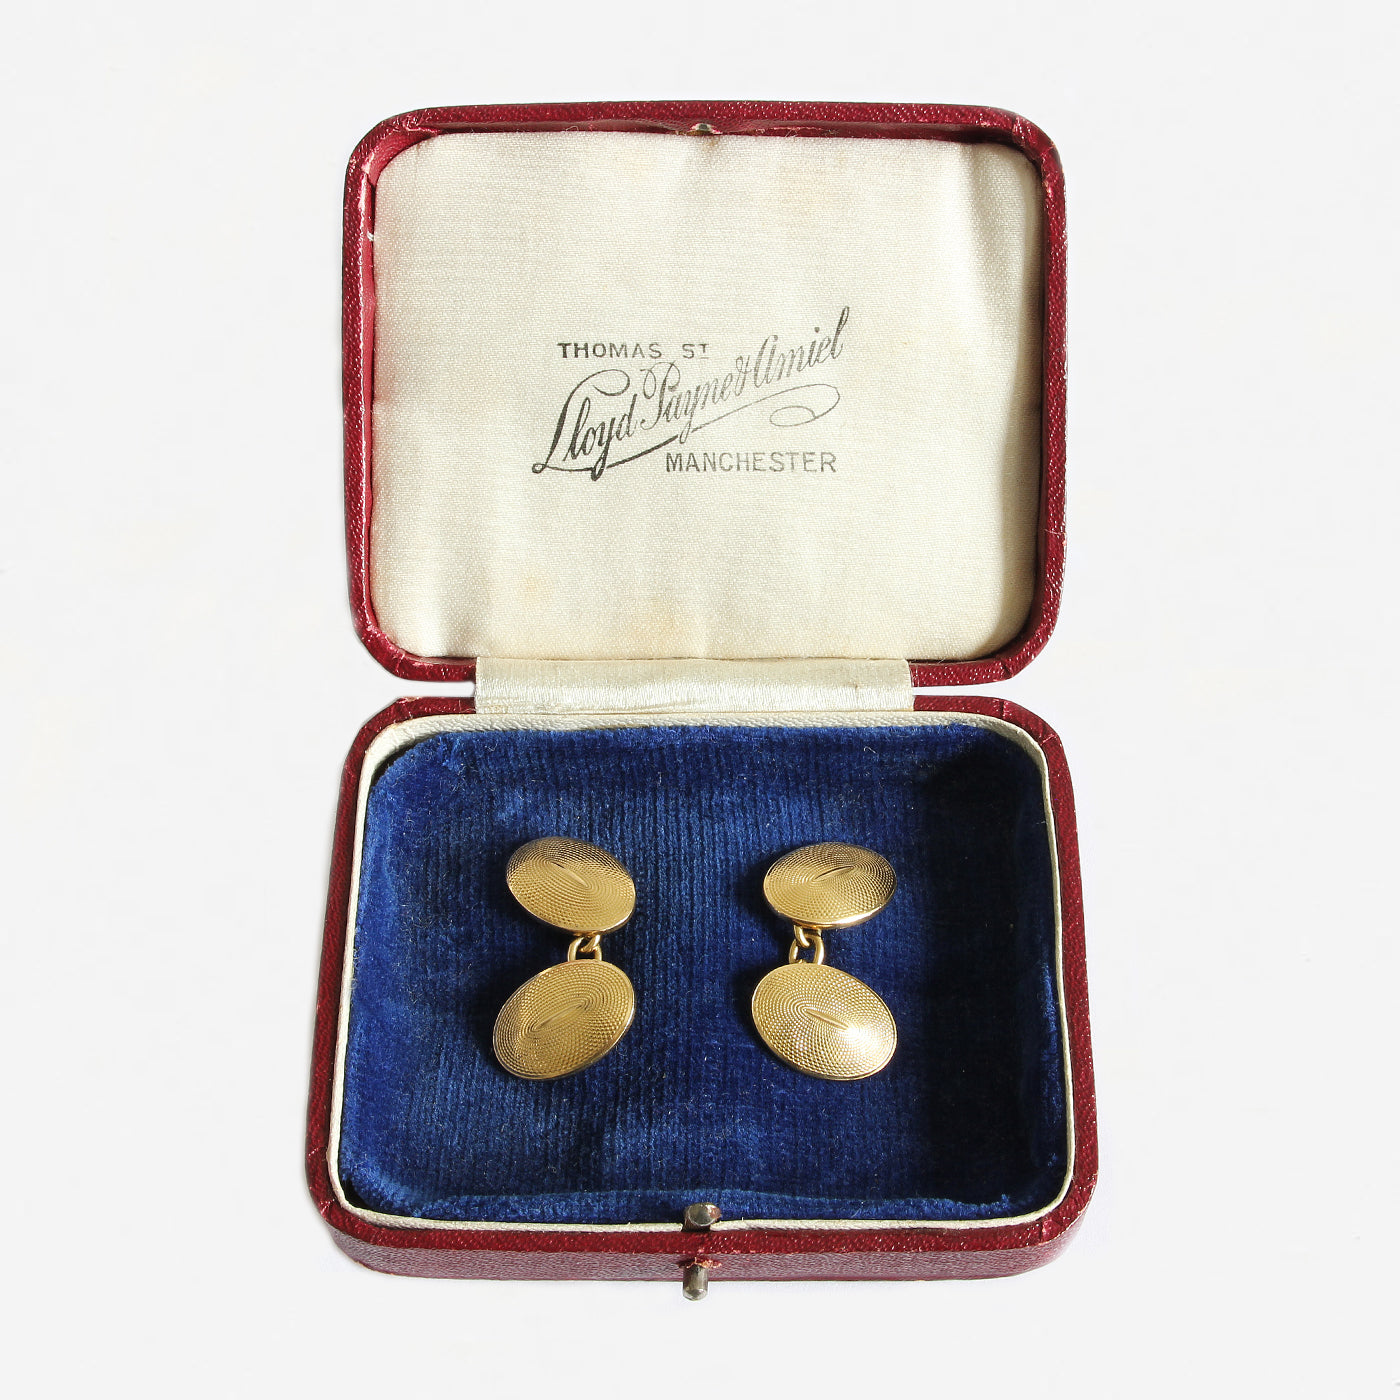 a yellow gold pair of secondhand oval engine turned cufflinks in box with chain connections